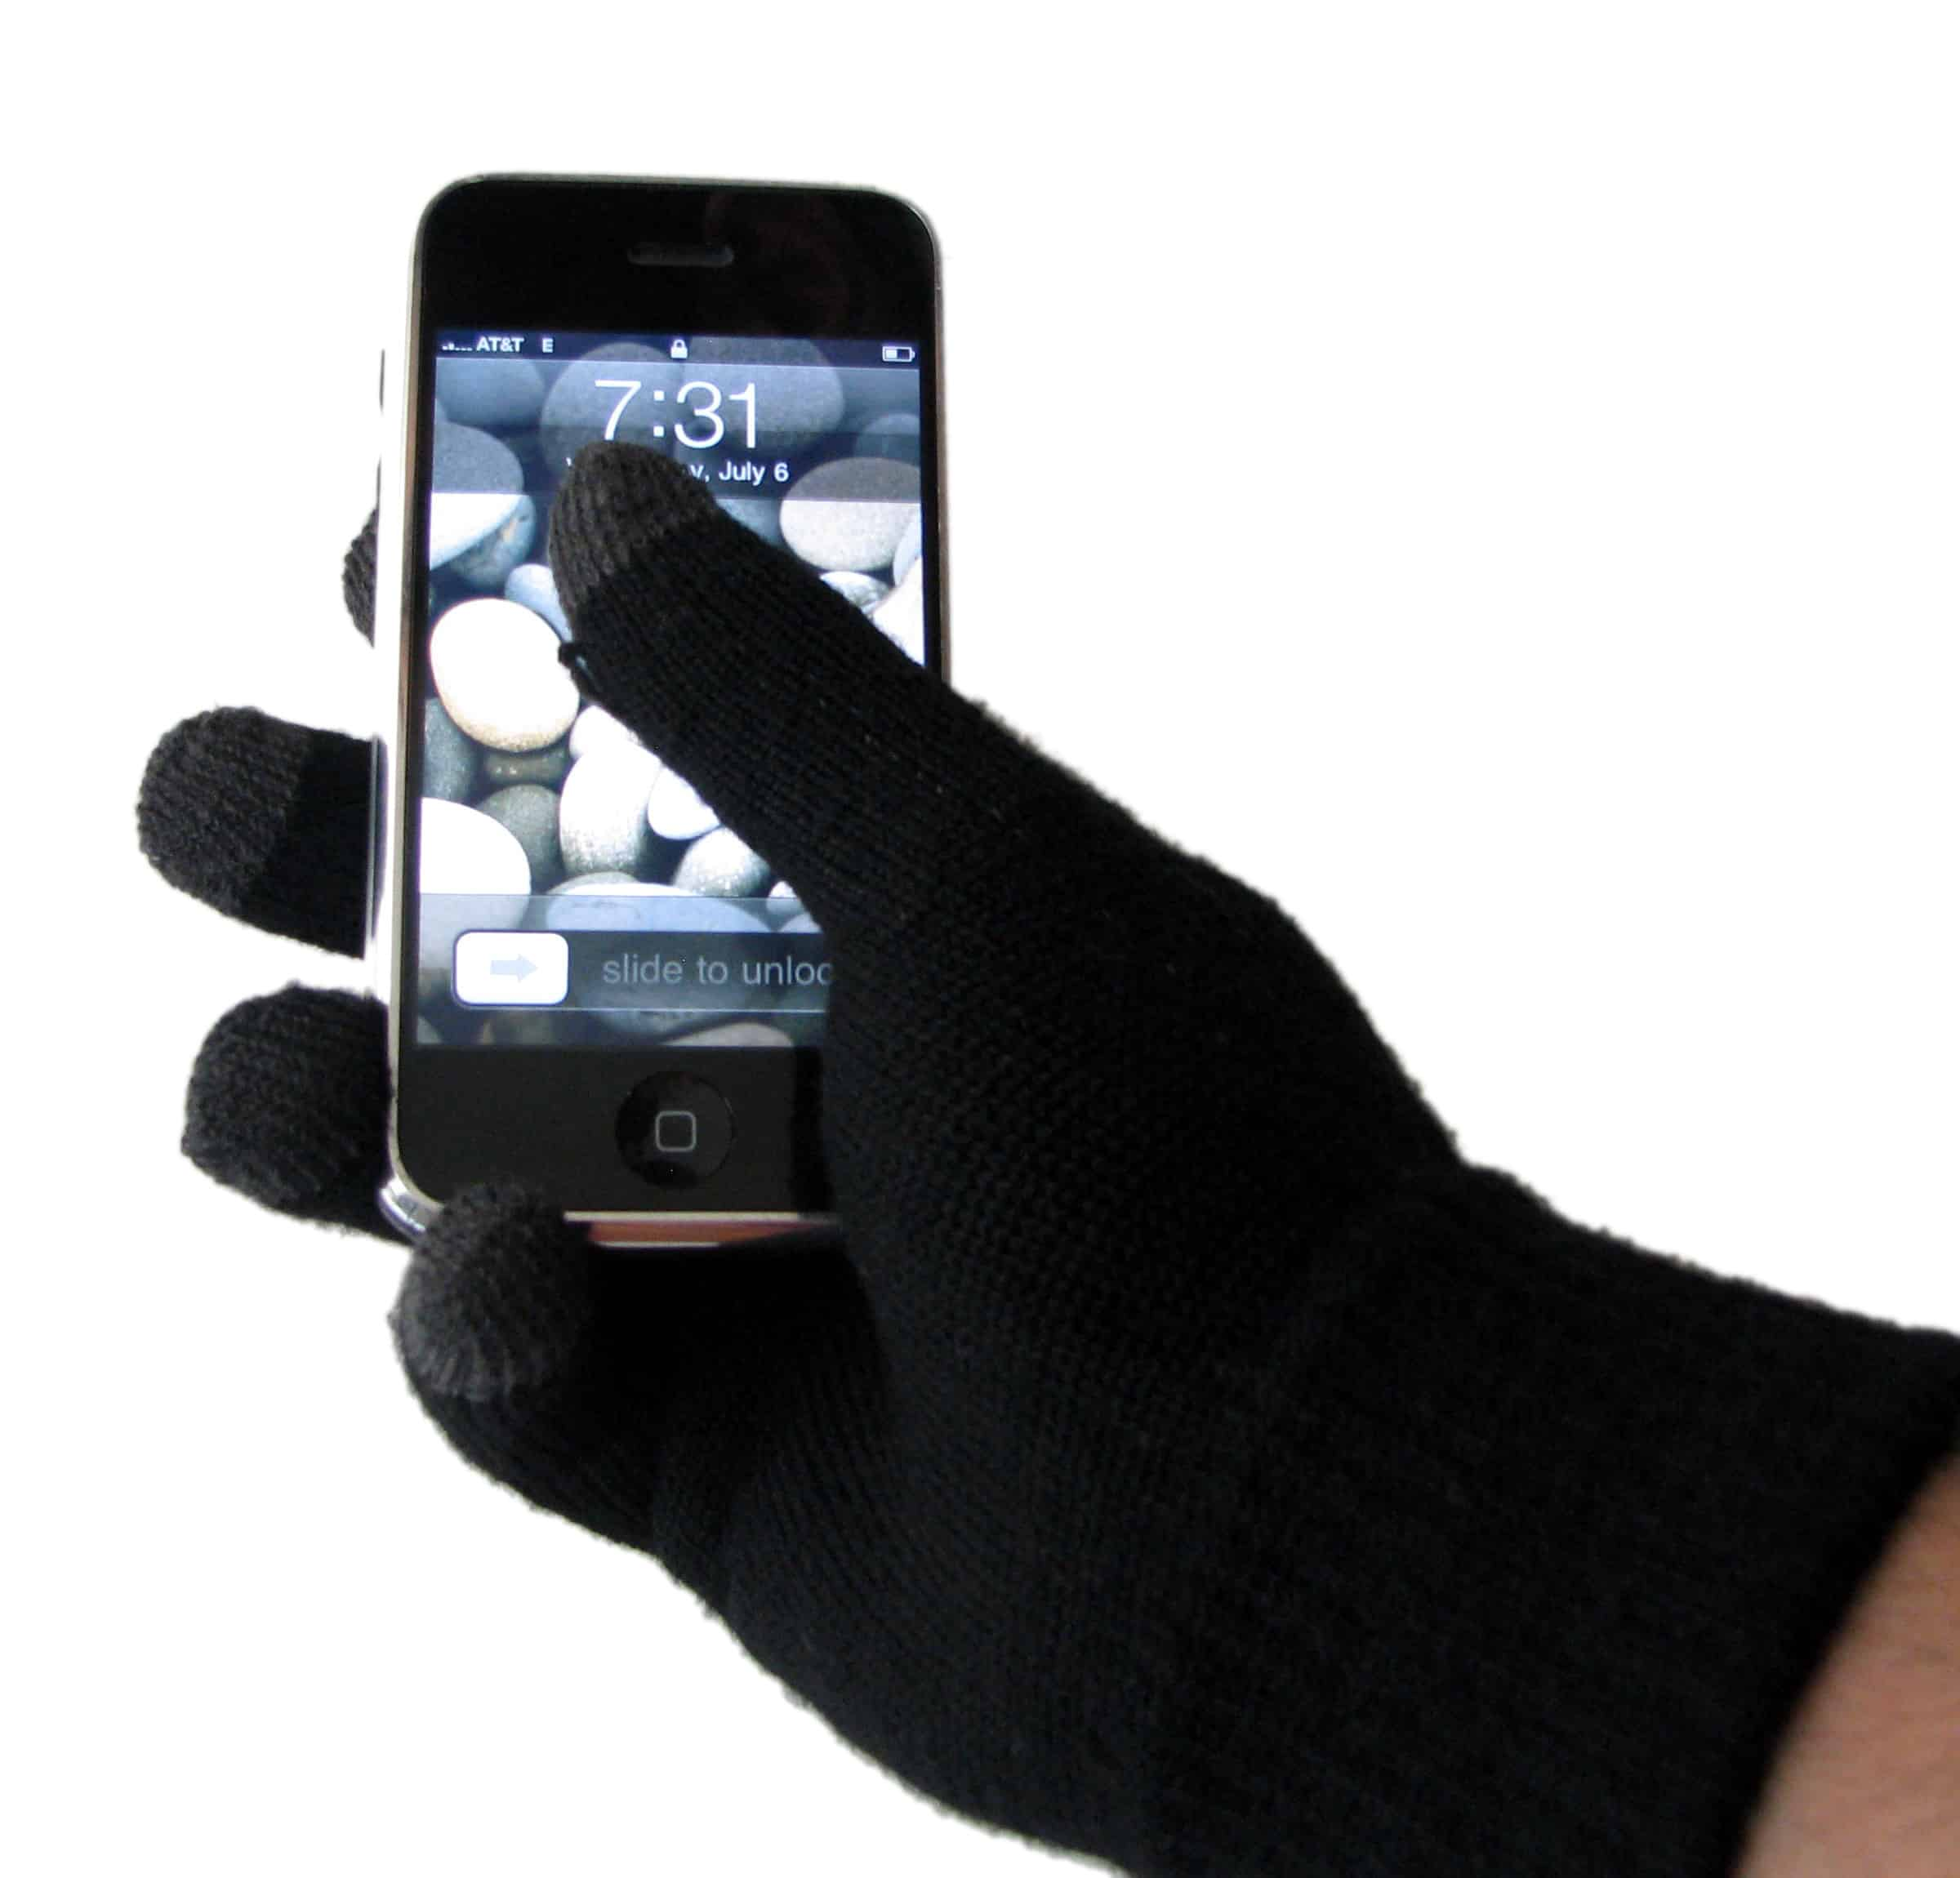 Stay Connected on your Smart Phone with Swypegear Texting Gloves #MommyMomentGifts #Giveaway